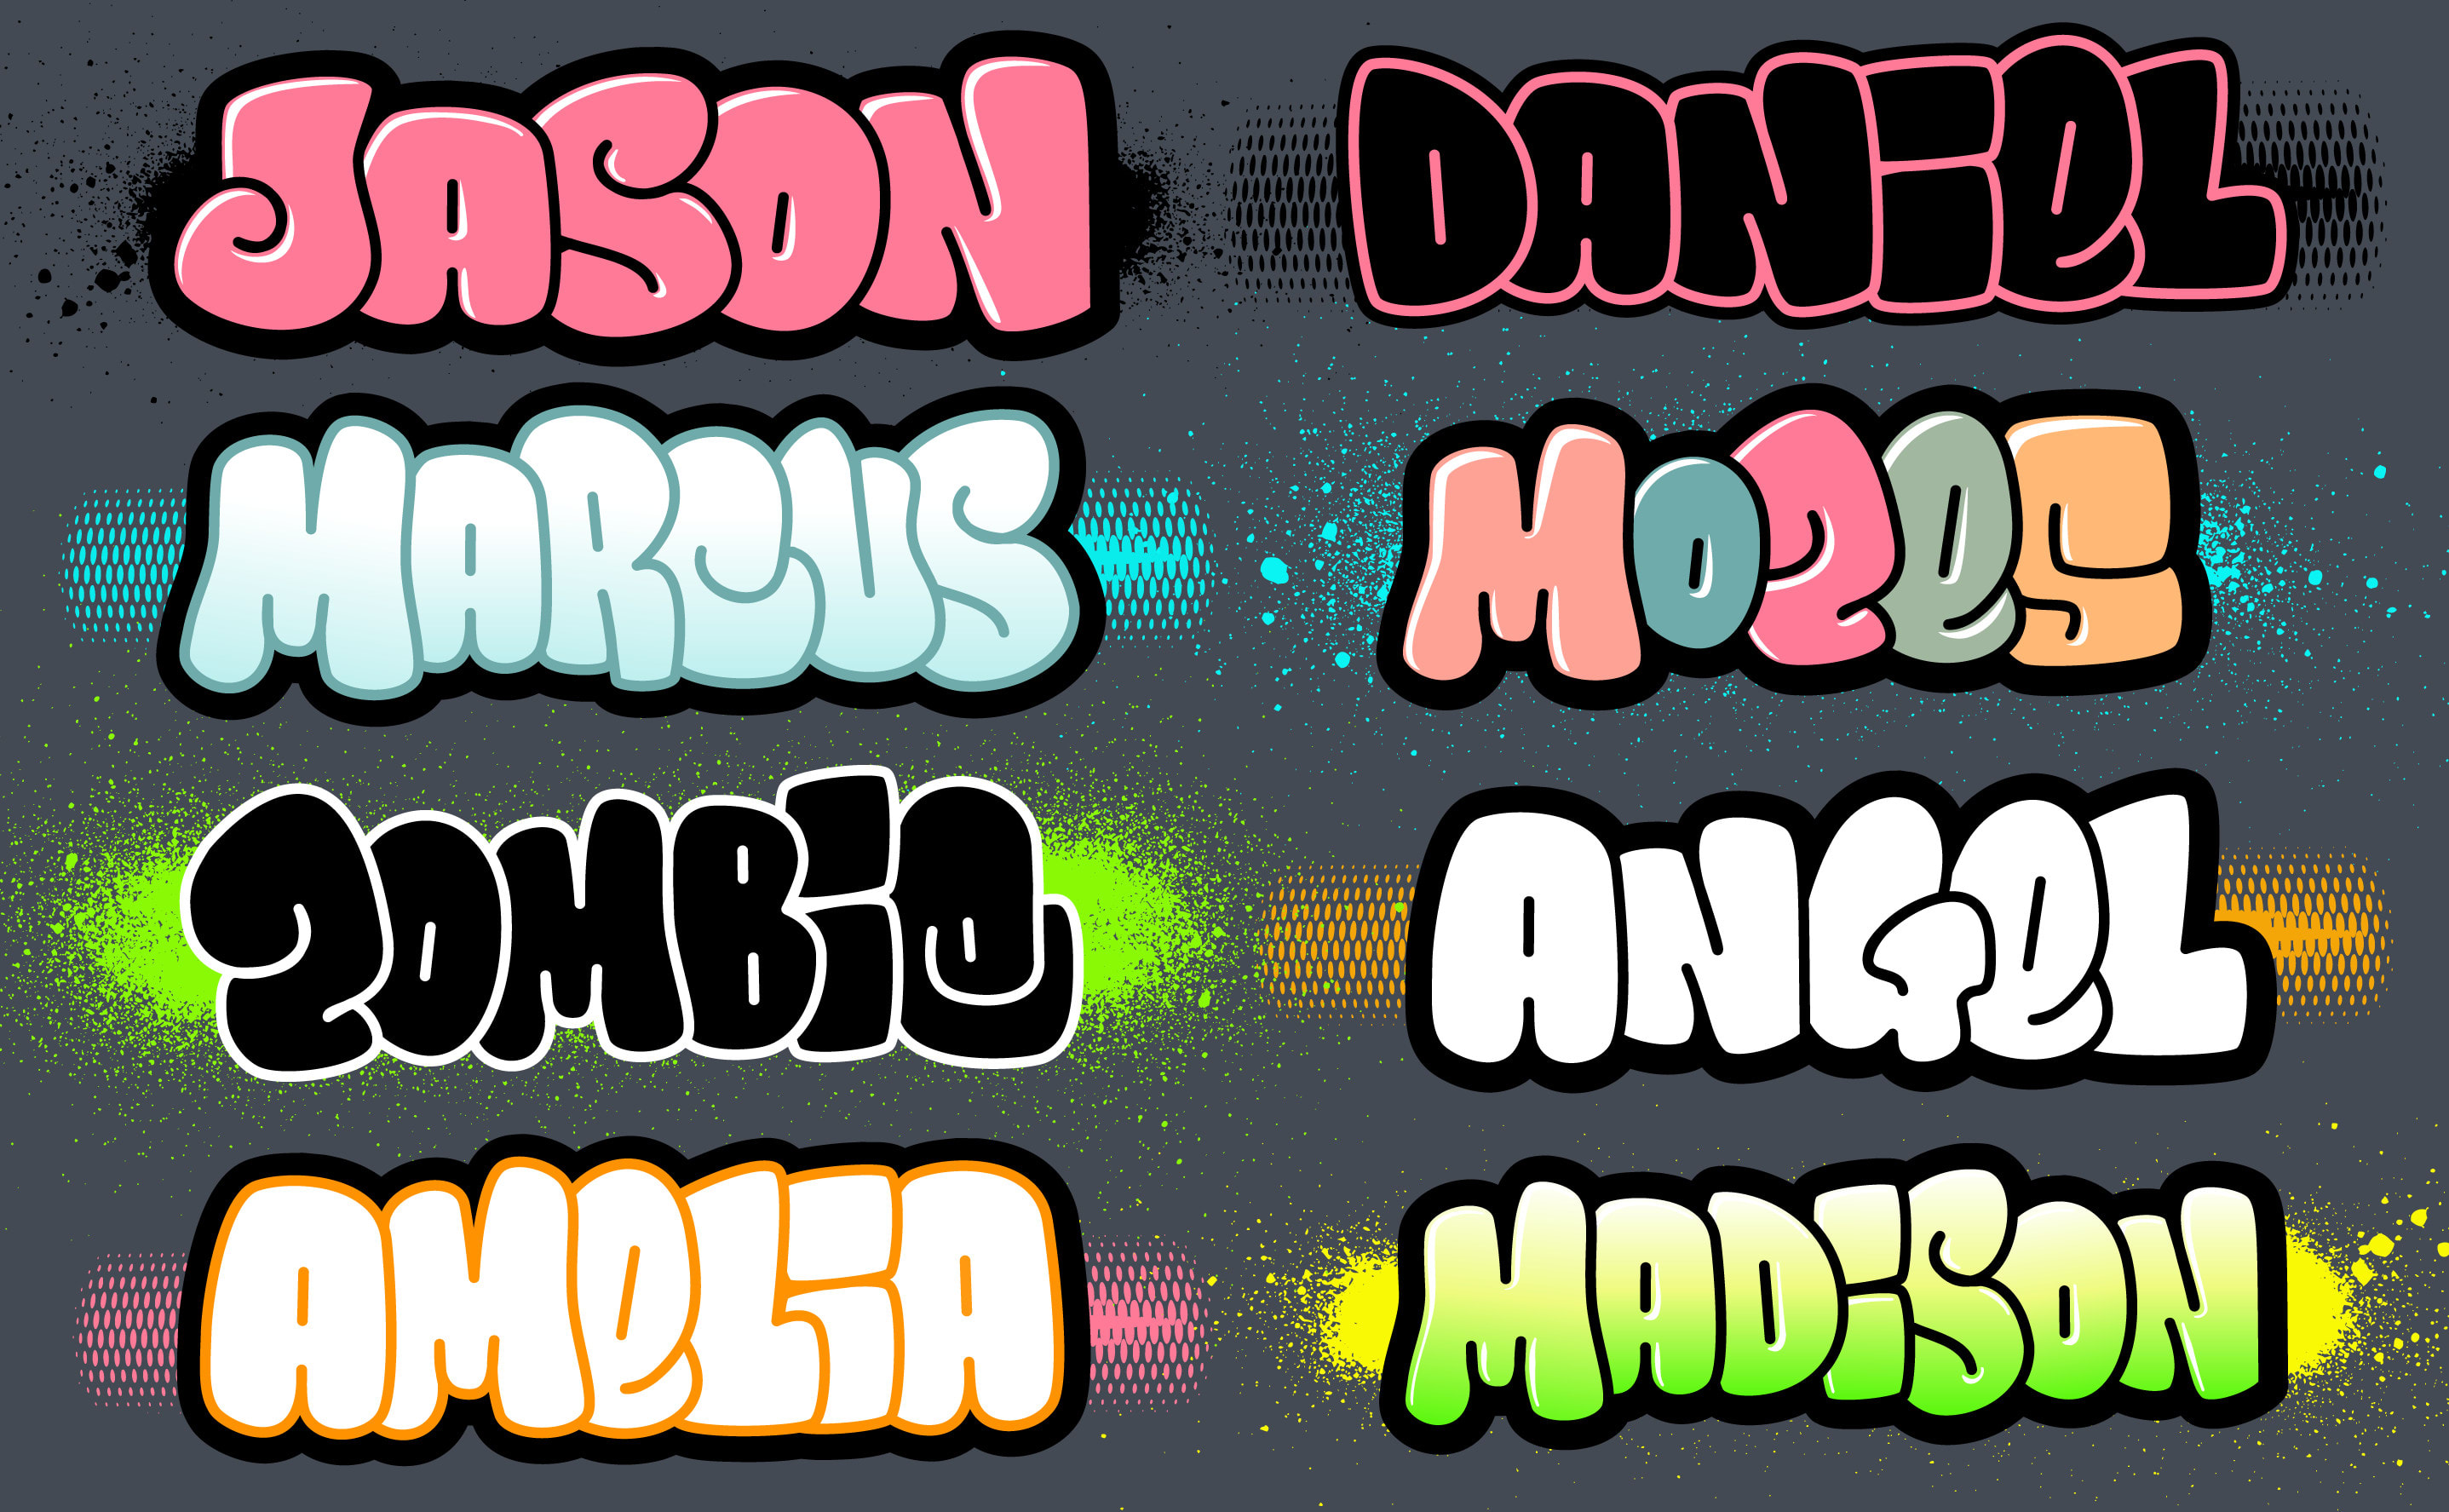 Design A Text,name Or Logo In Bubble Graffiti Fonts